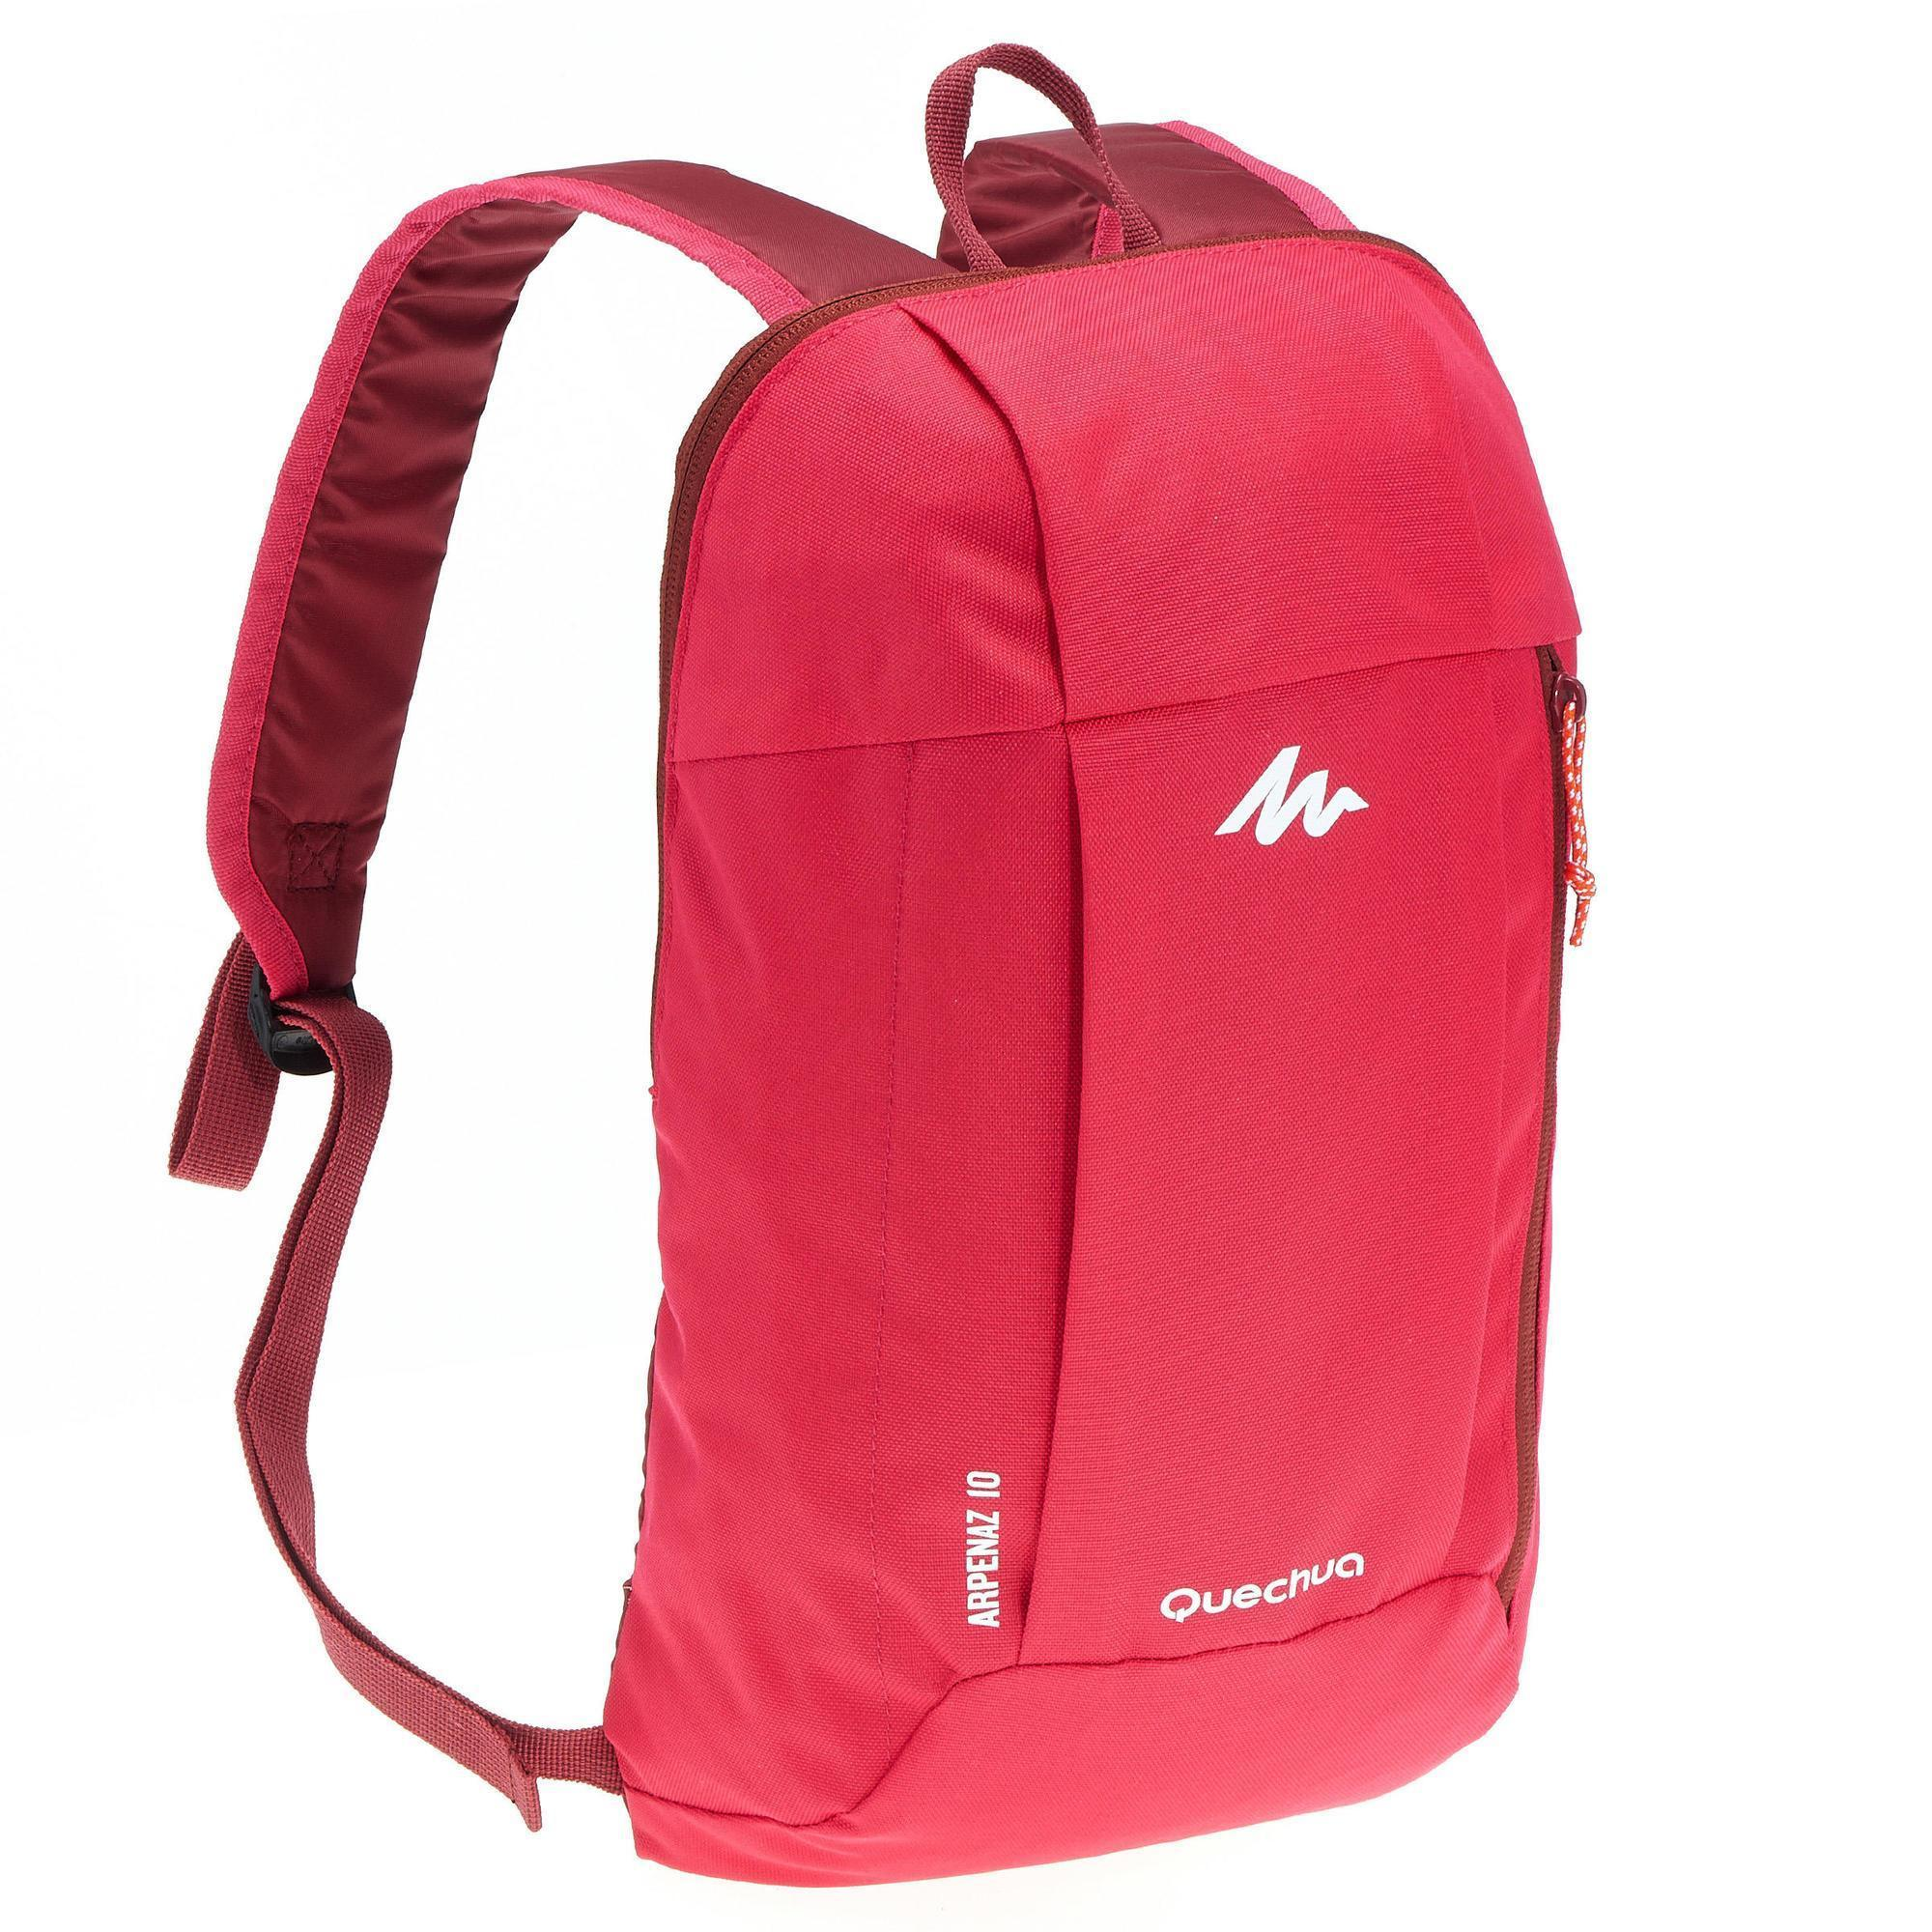 Nh100 10l 10l Hiking Backpack Pink Quechua